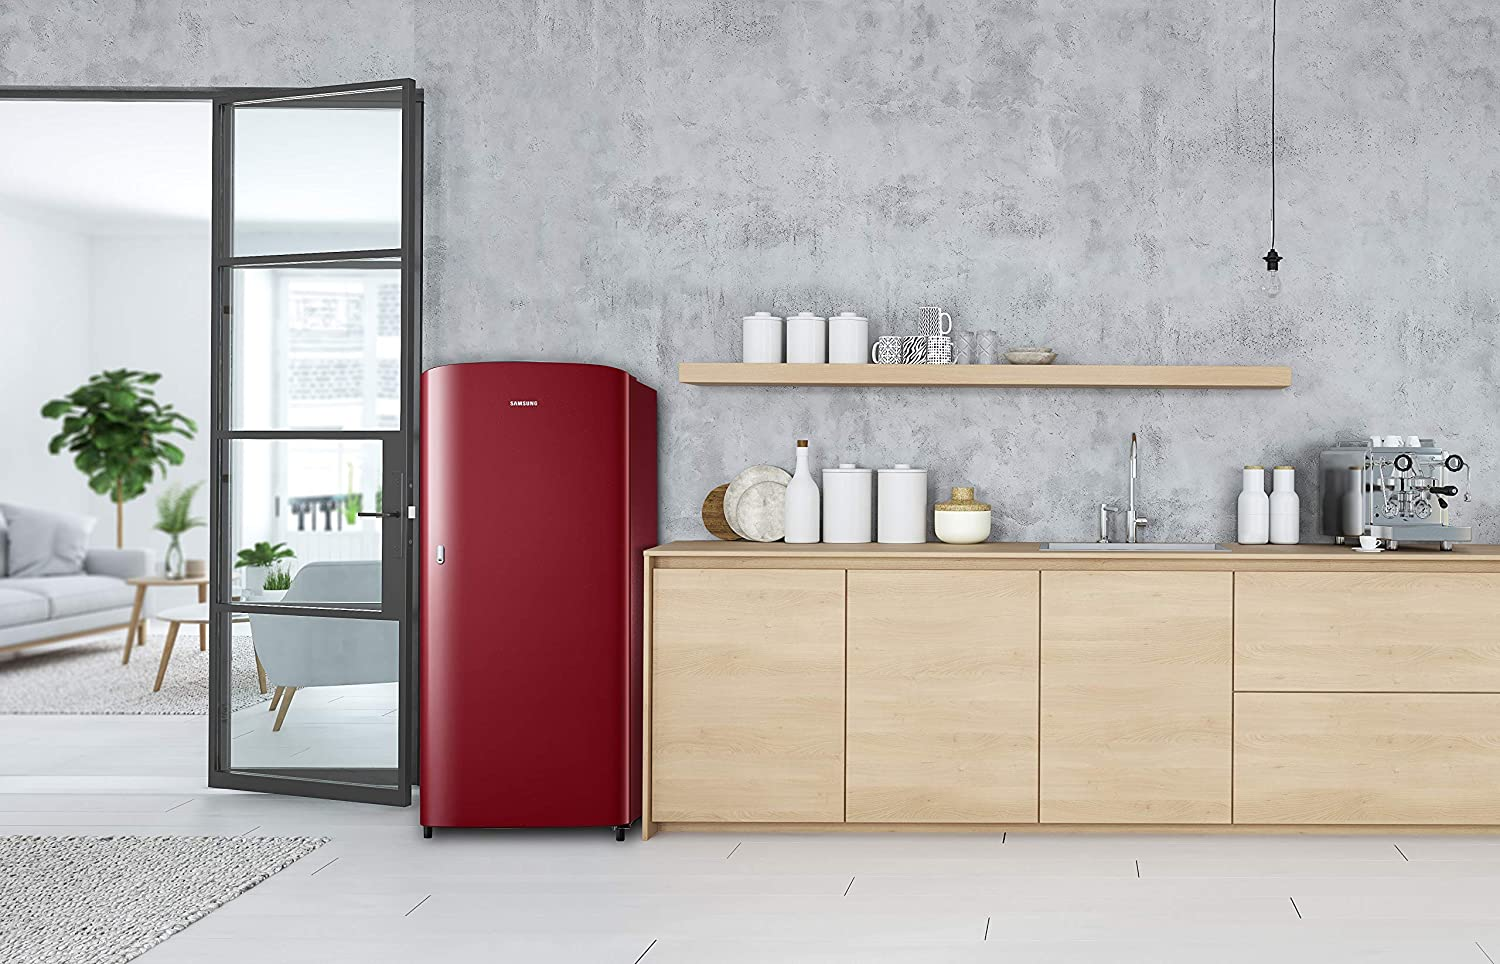 Samsung 192 L 1 Star Direct Cool Single Door Refrigerator  RR19T21CARH/NL, Scarlet Red  Large Appliances